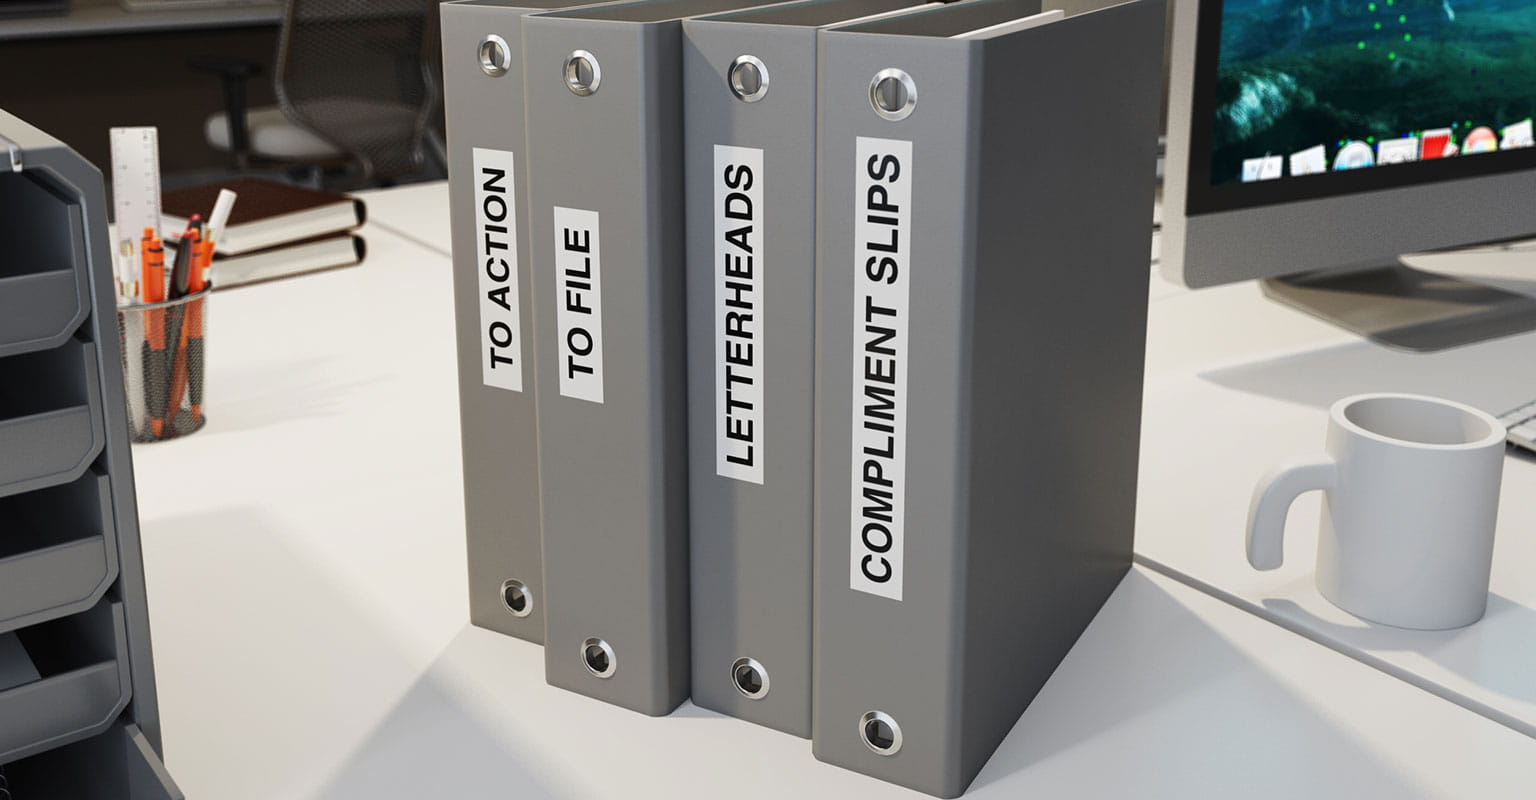 Four file folders with Brother P-touch labels on spine identifying the contents of the folders